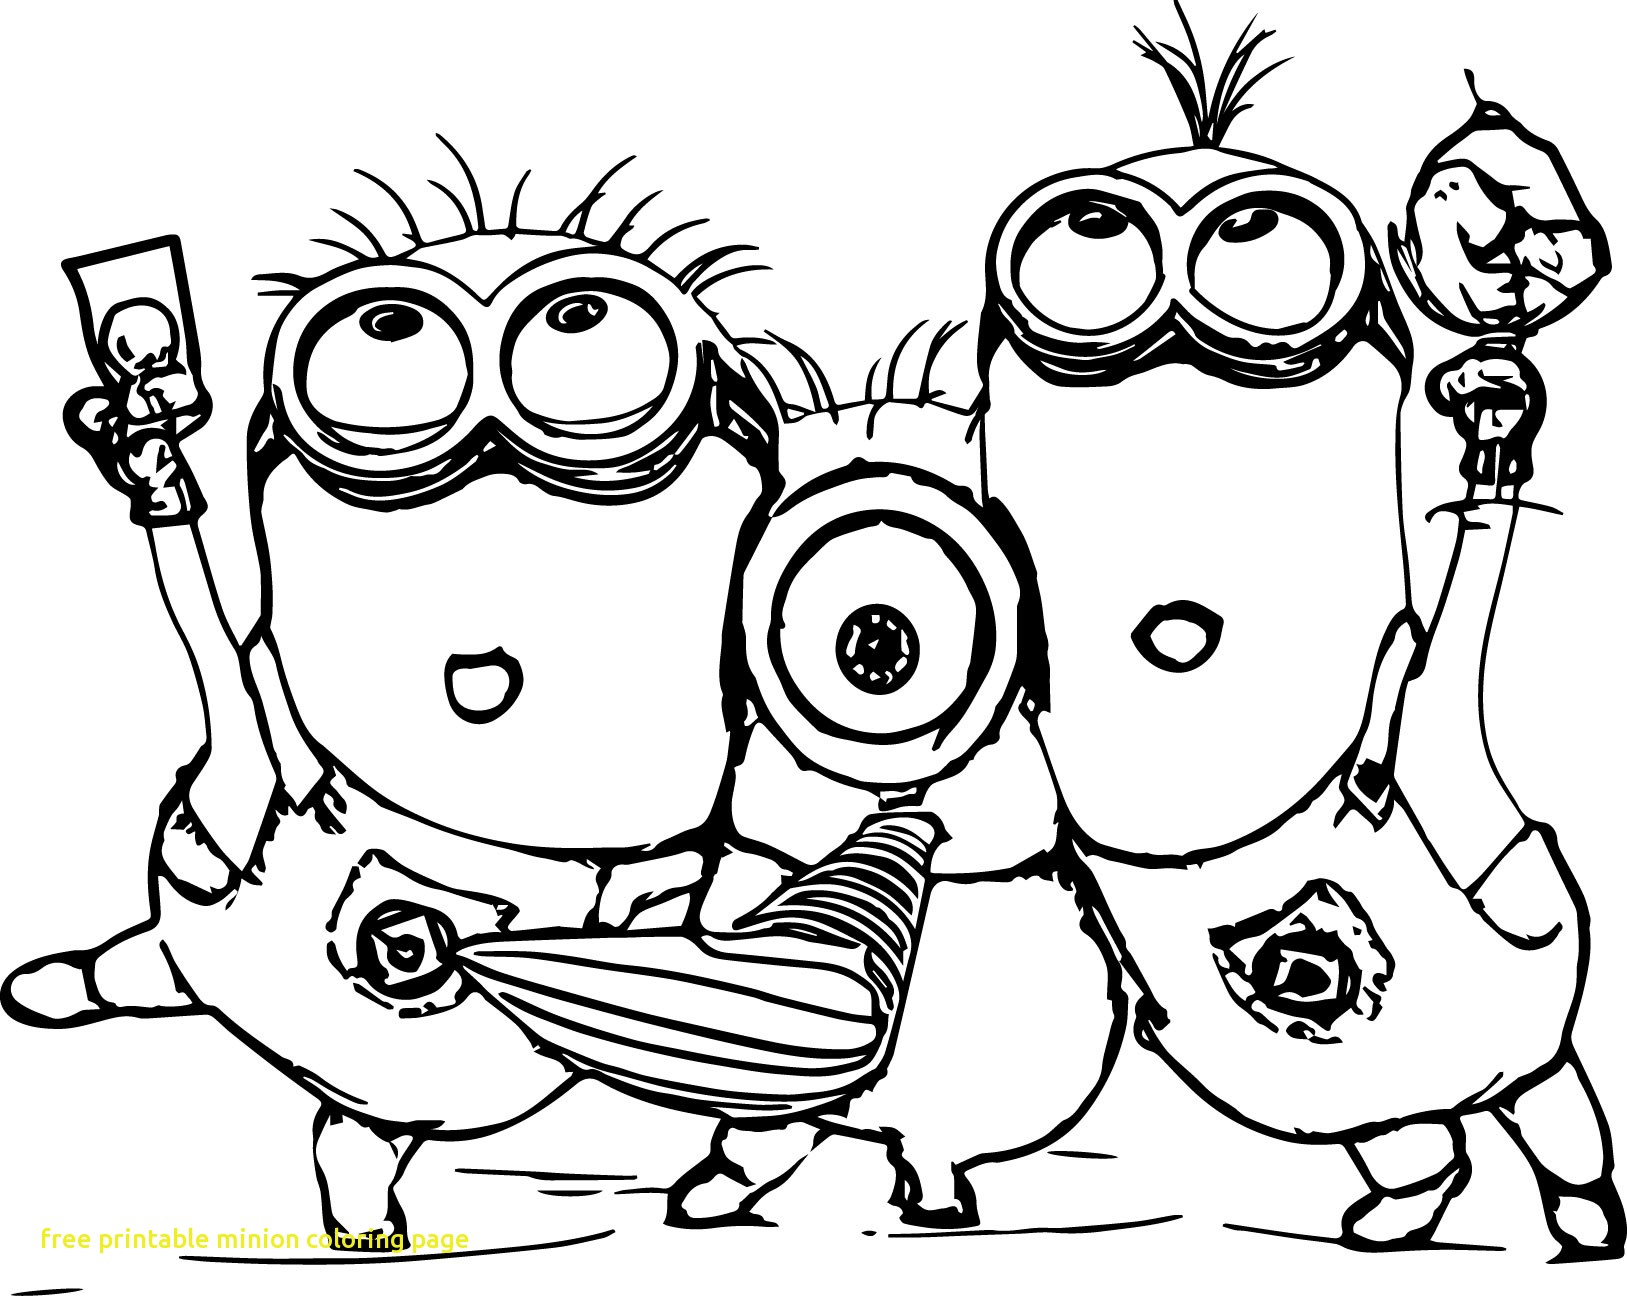 1627x1296 Free Printable Minion Coloring Page With Minion Coloring Pages